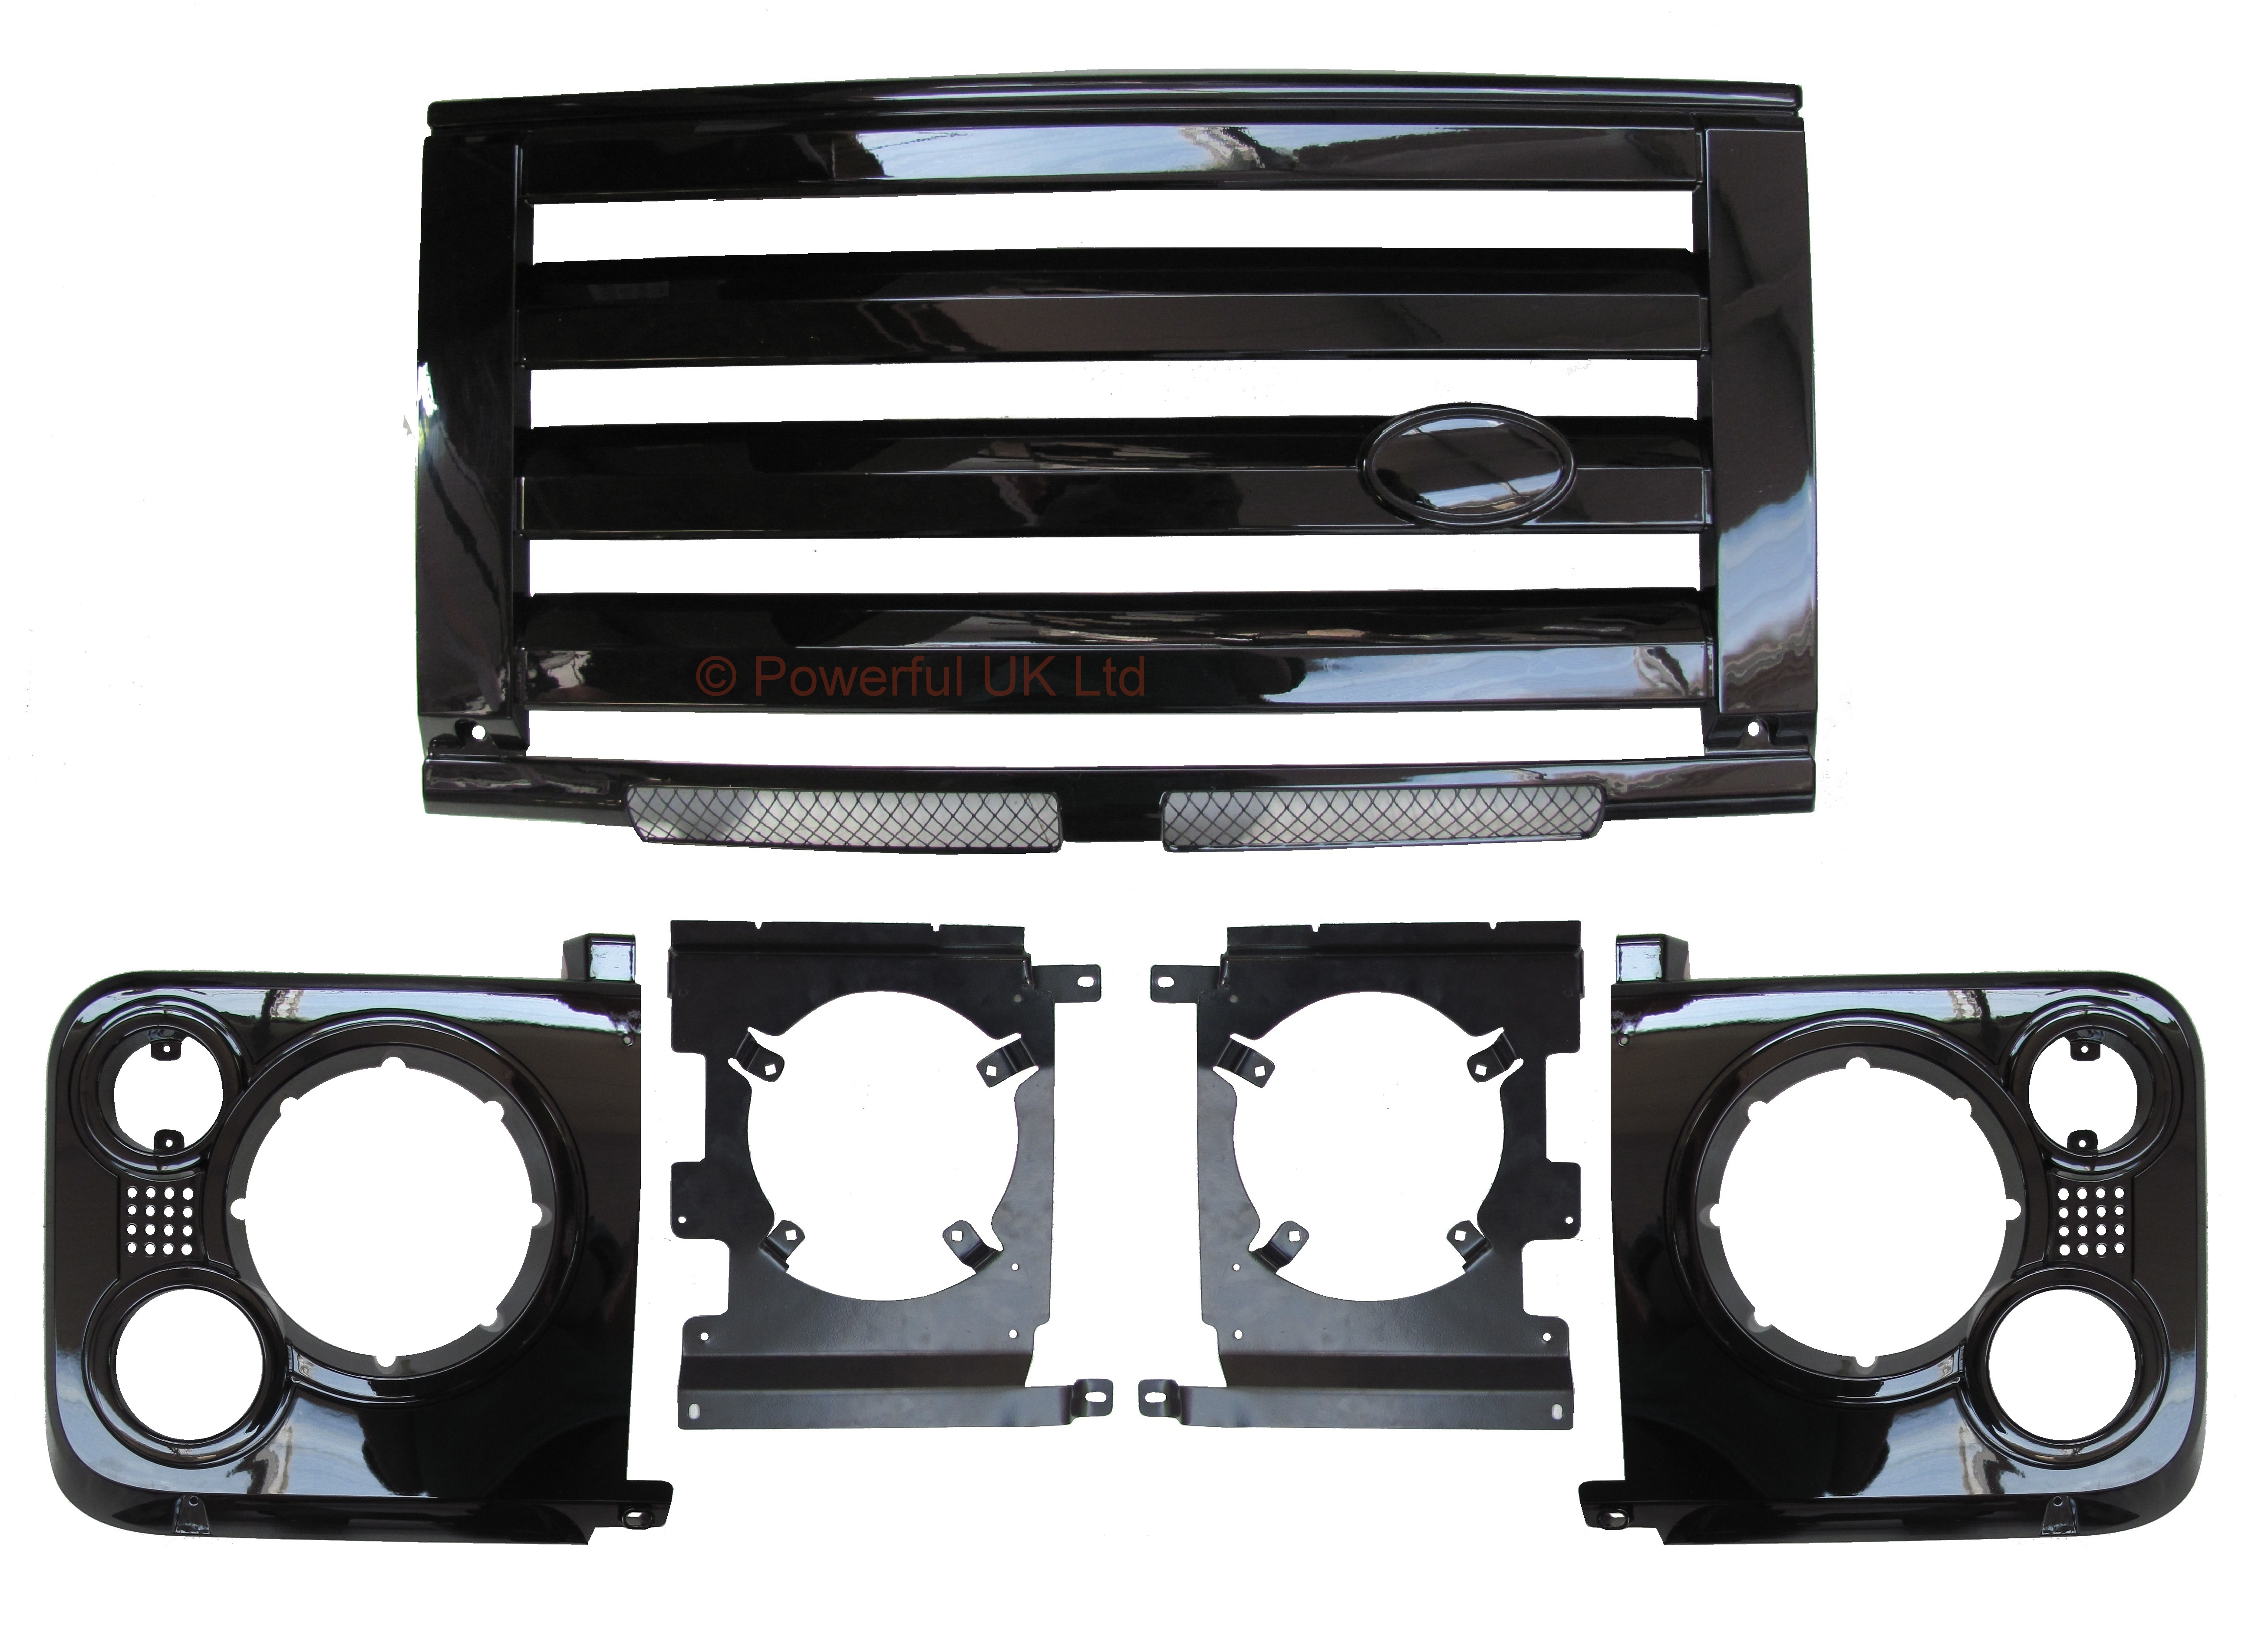 Gloss black svx style front grille kit for land rover